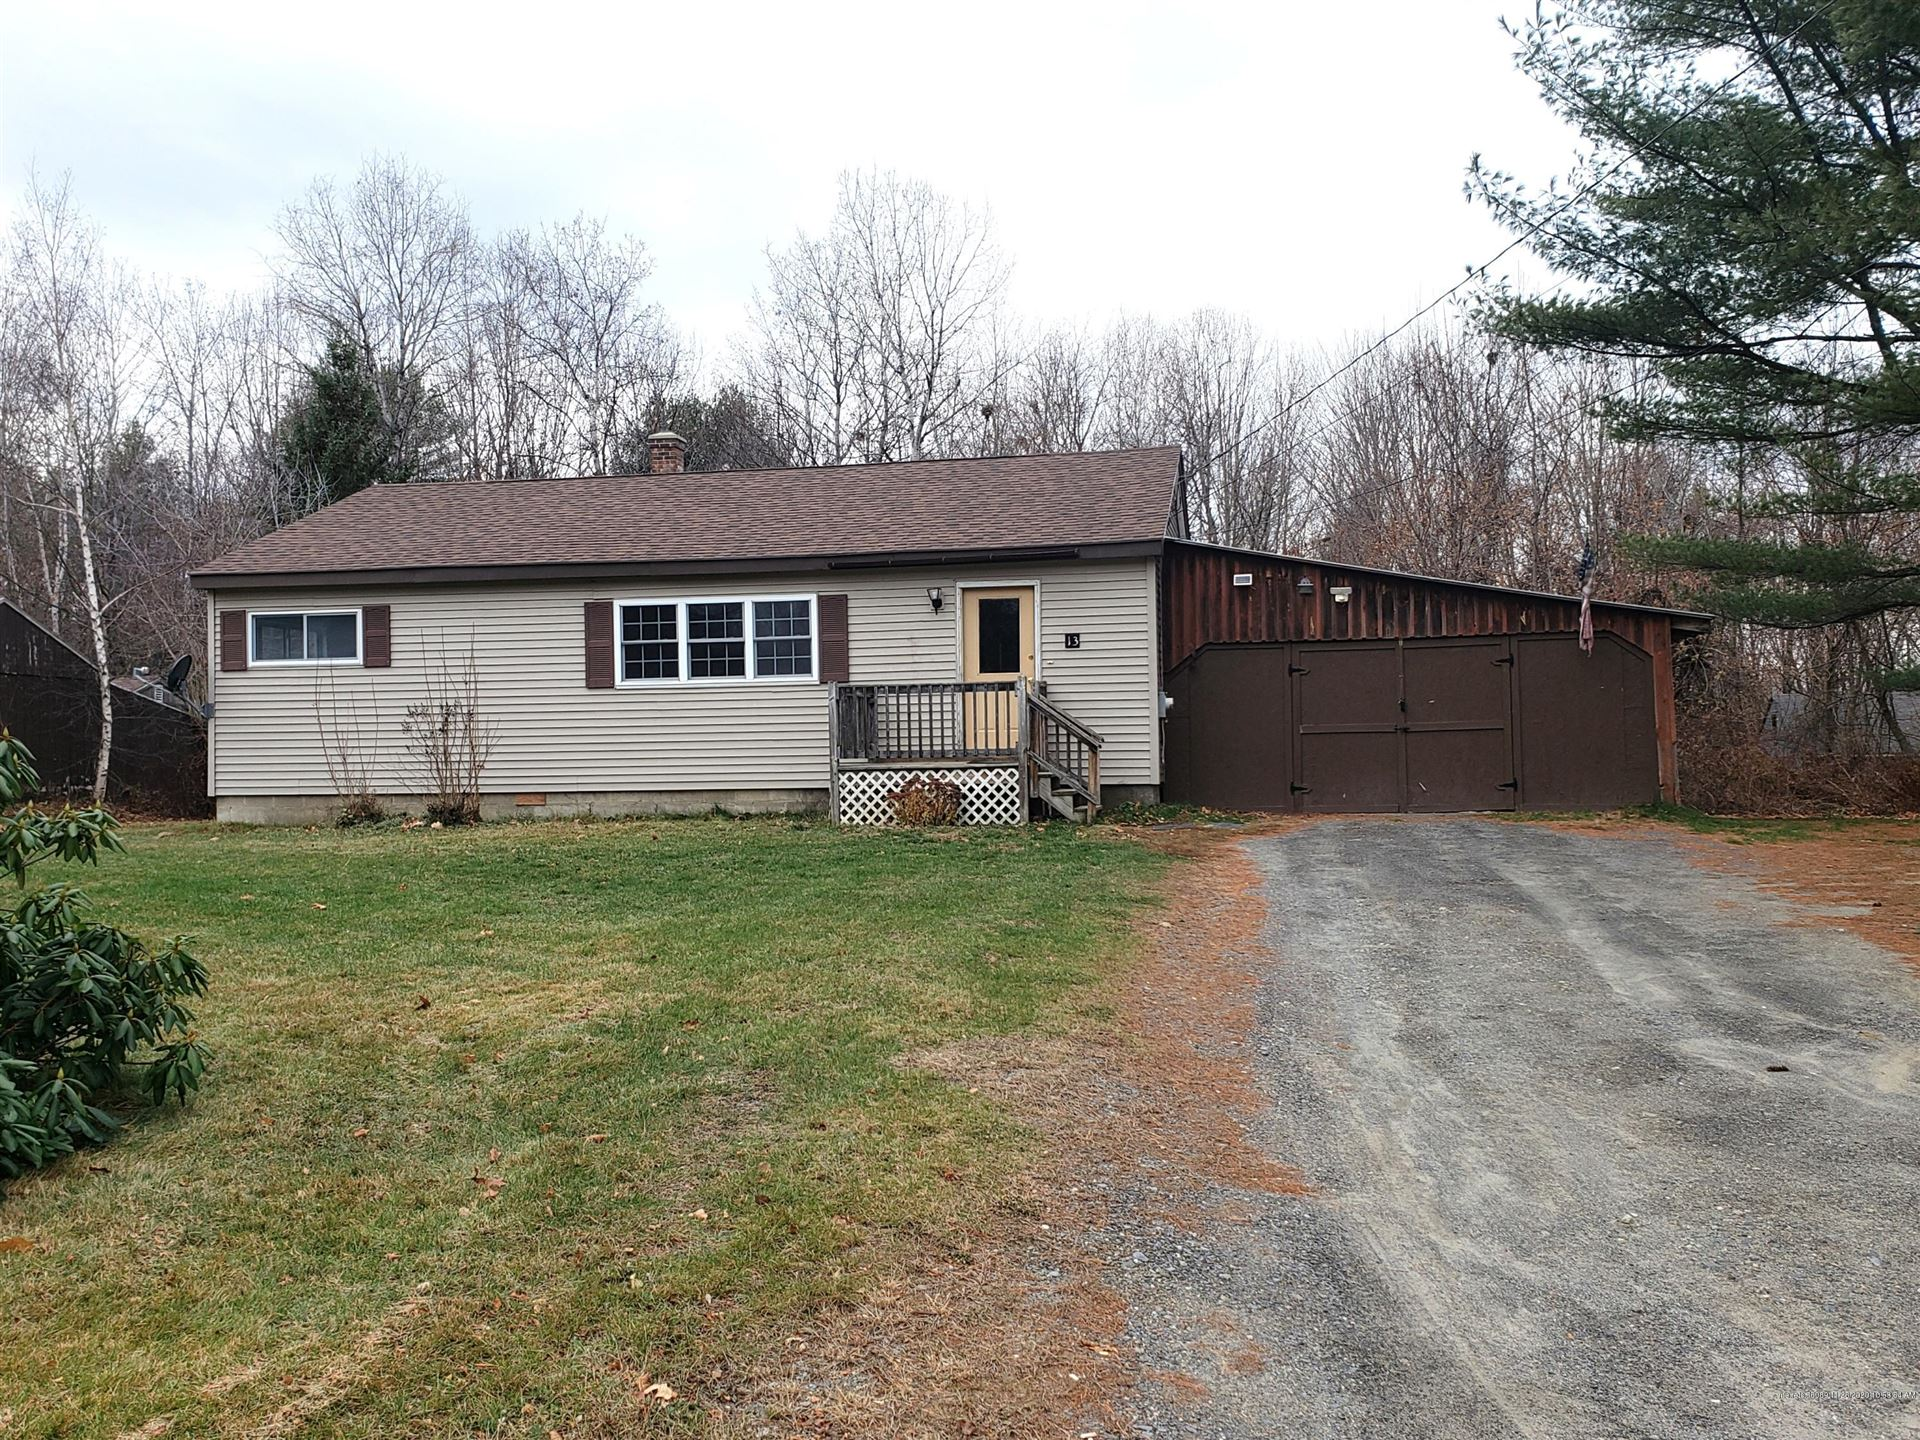 Photo of 13 Chamberlain Street, Skowhegan, ME 04976 (MLS # 1476888)